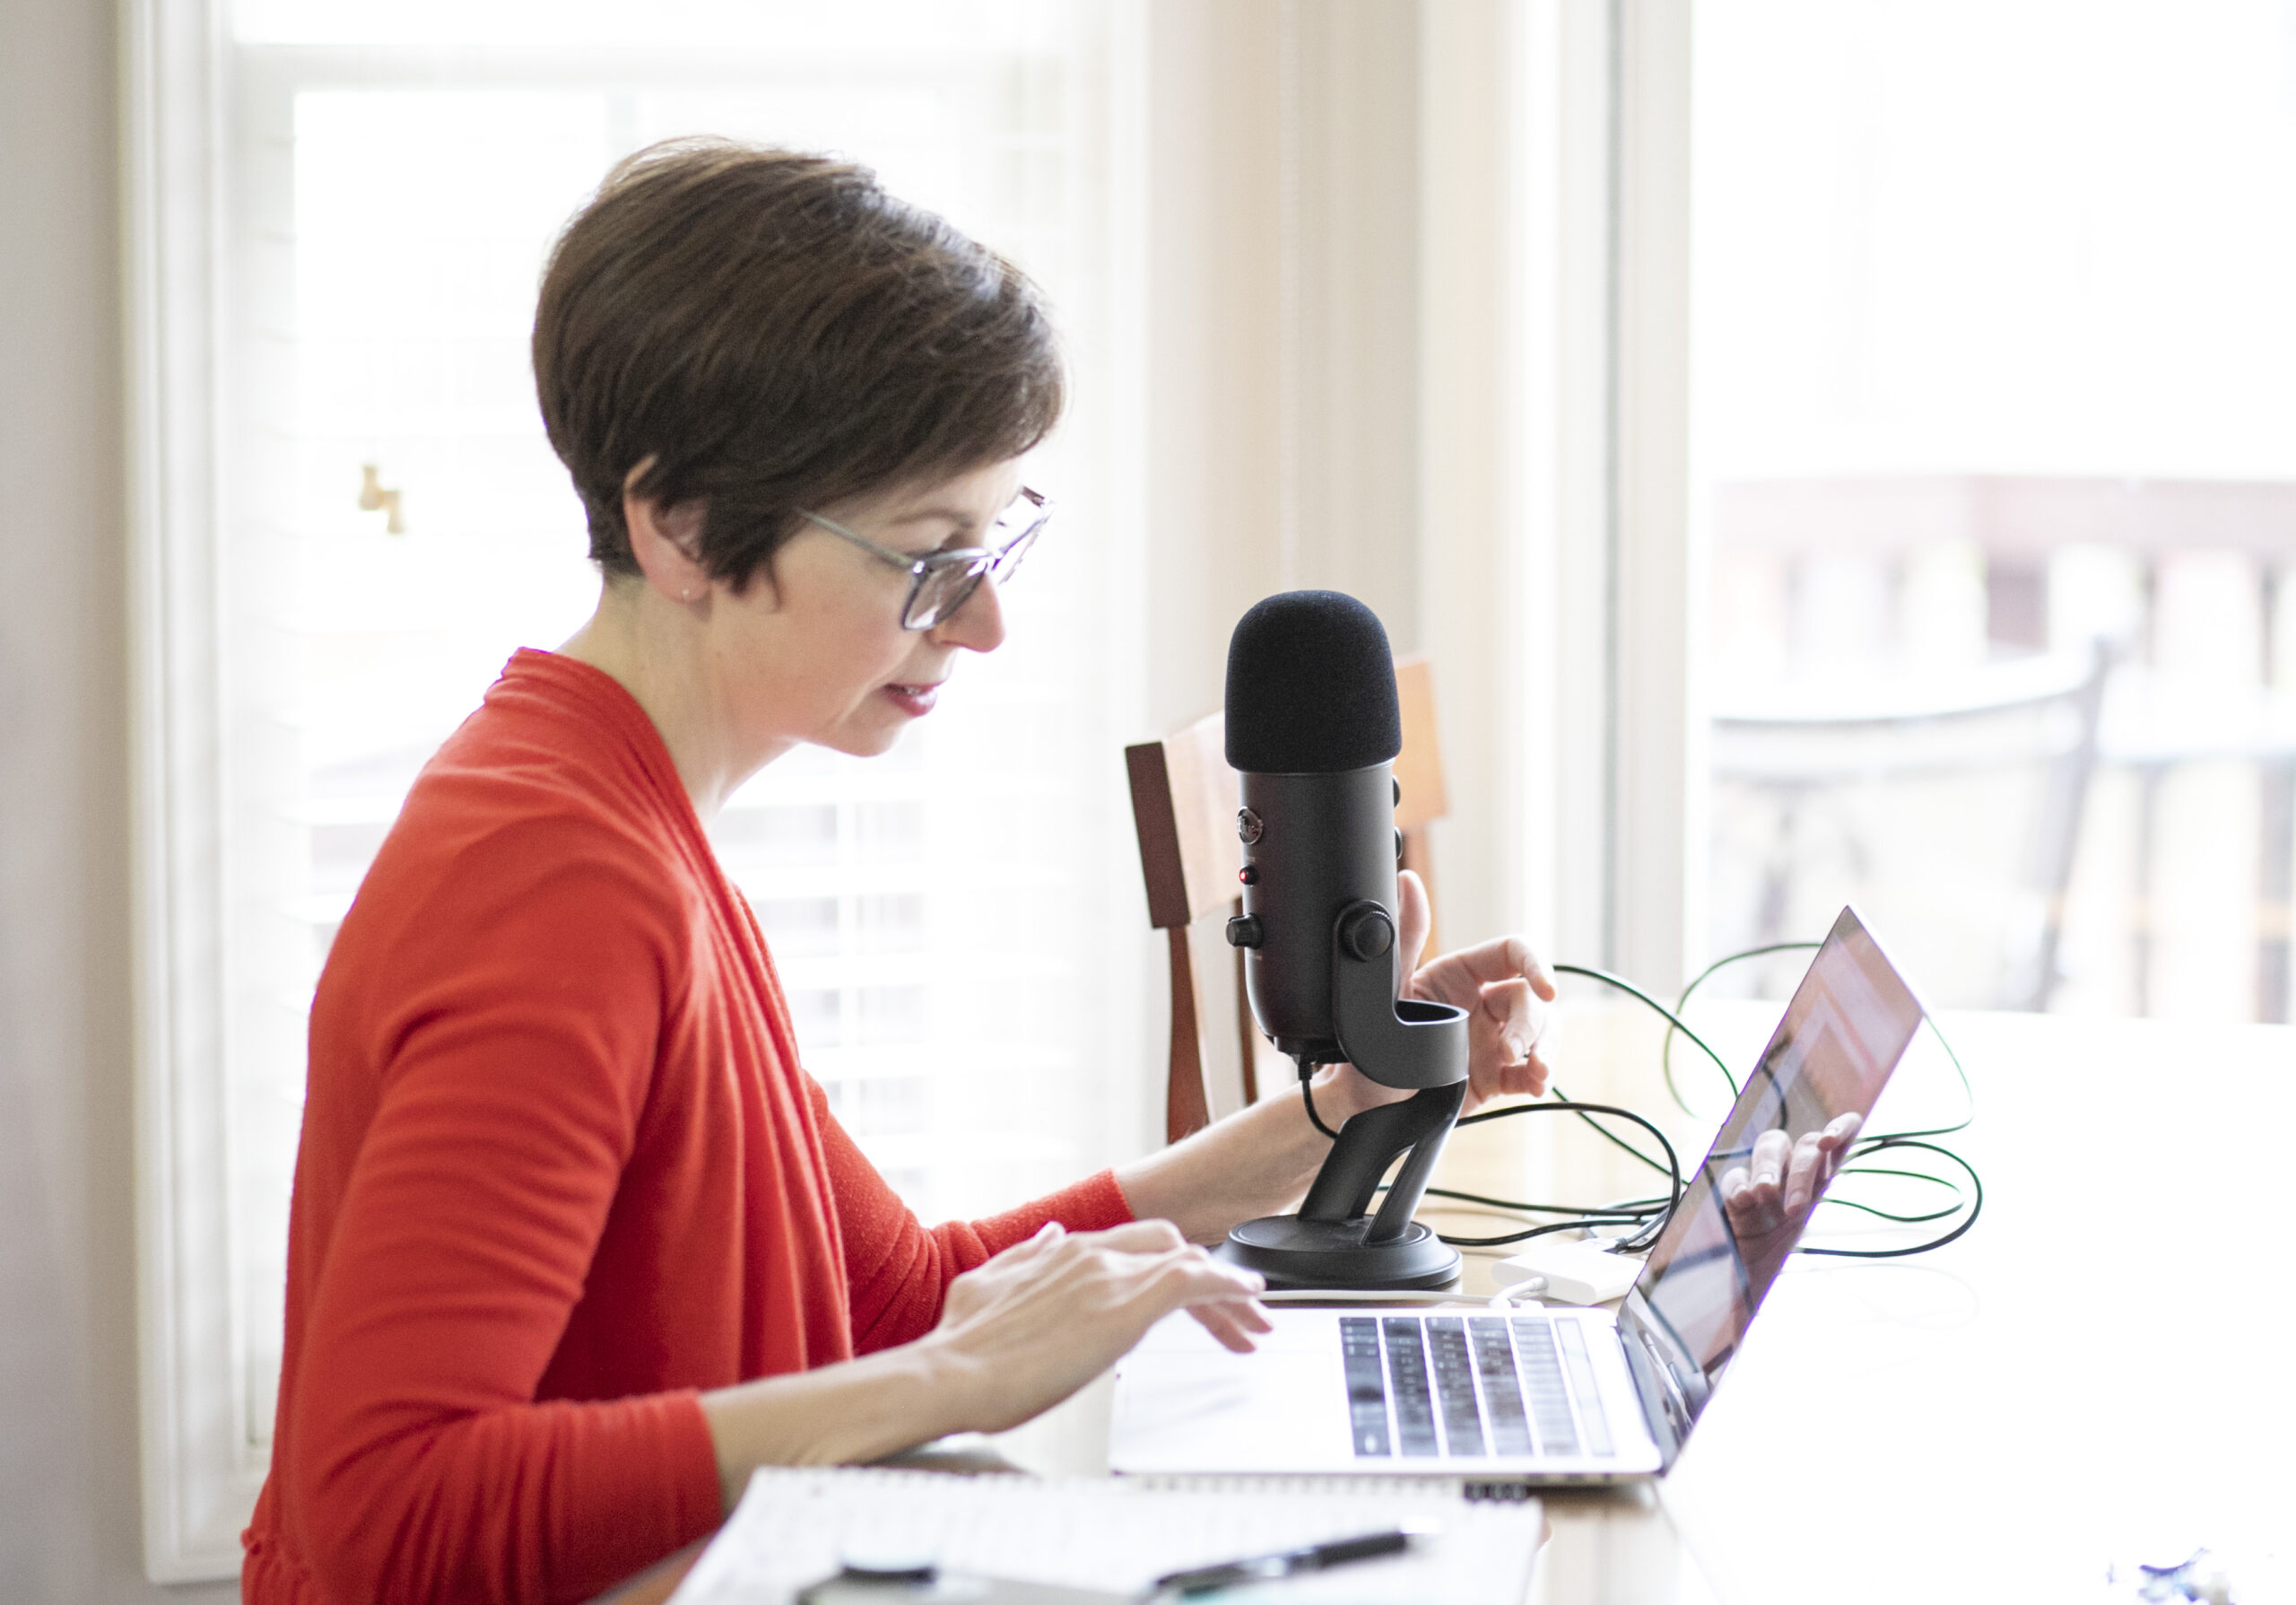 A woman sits in front of a laptop with a microphone